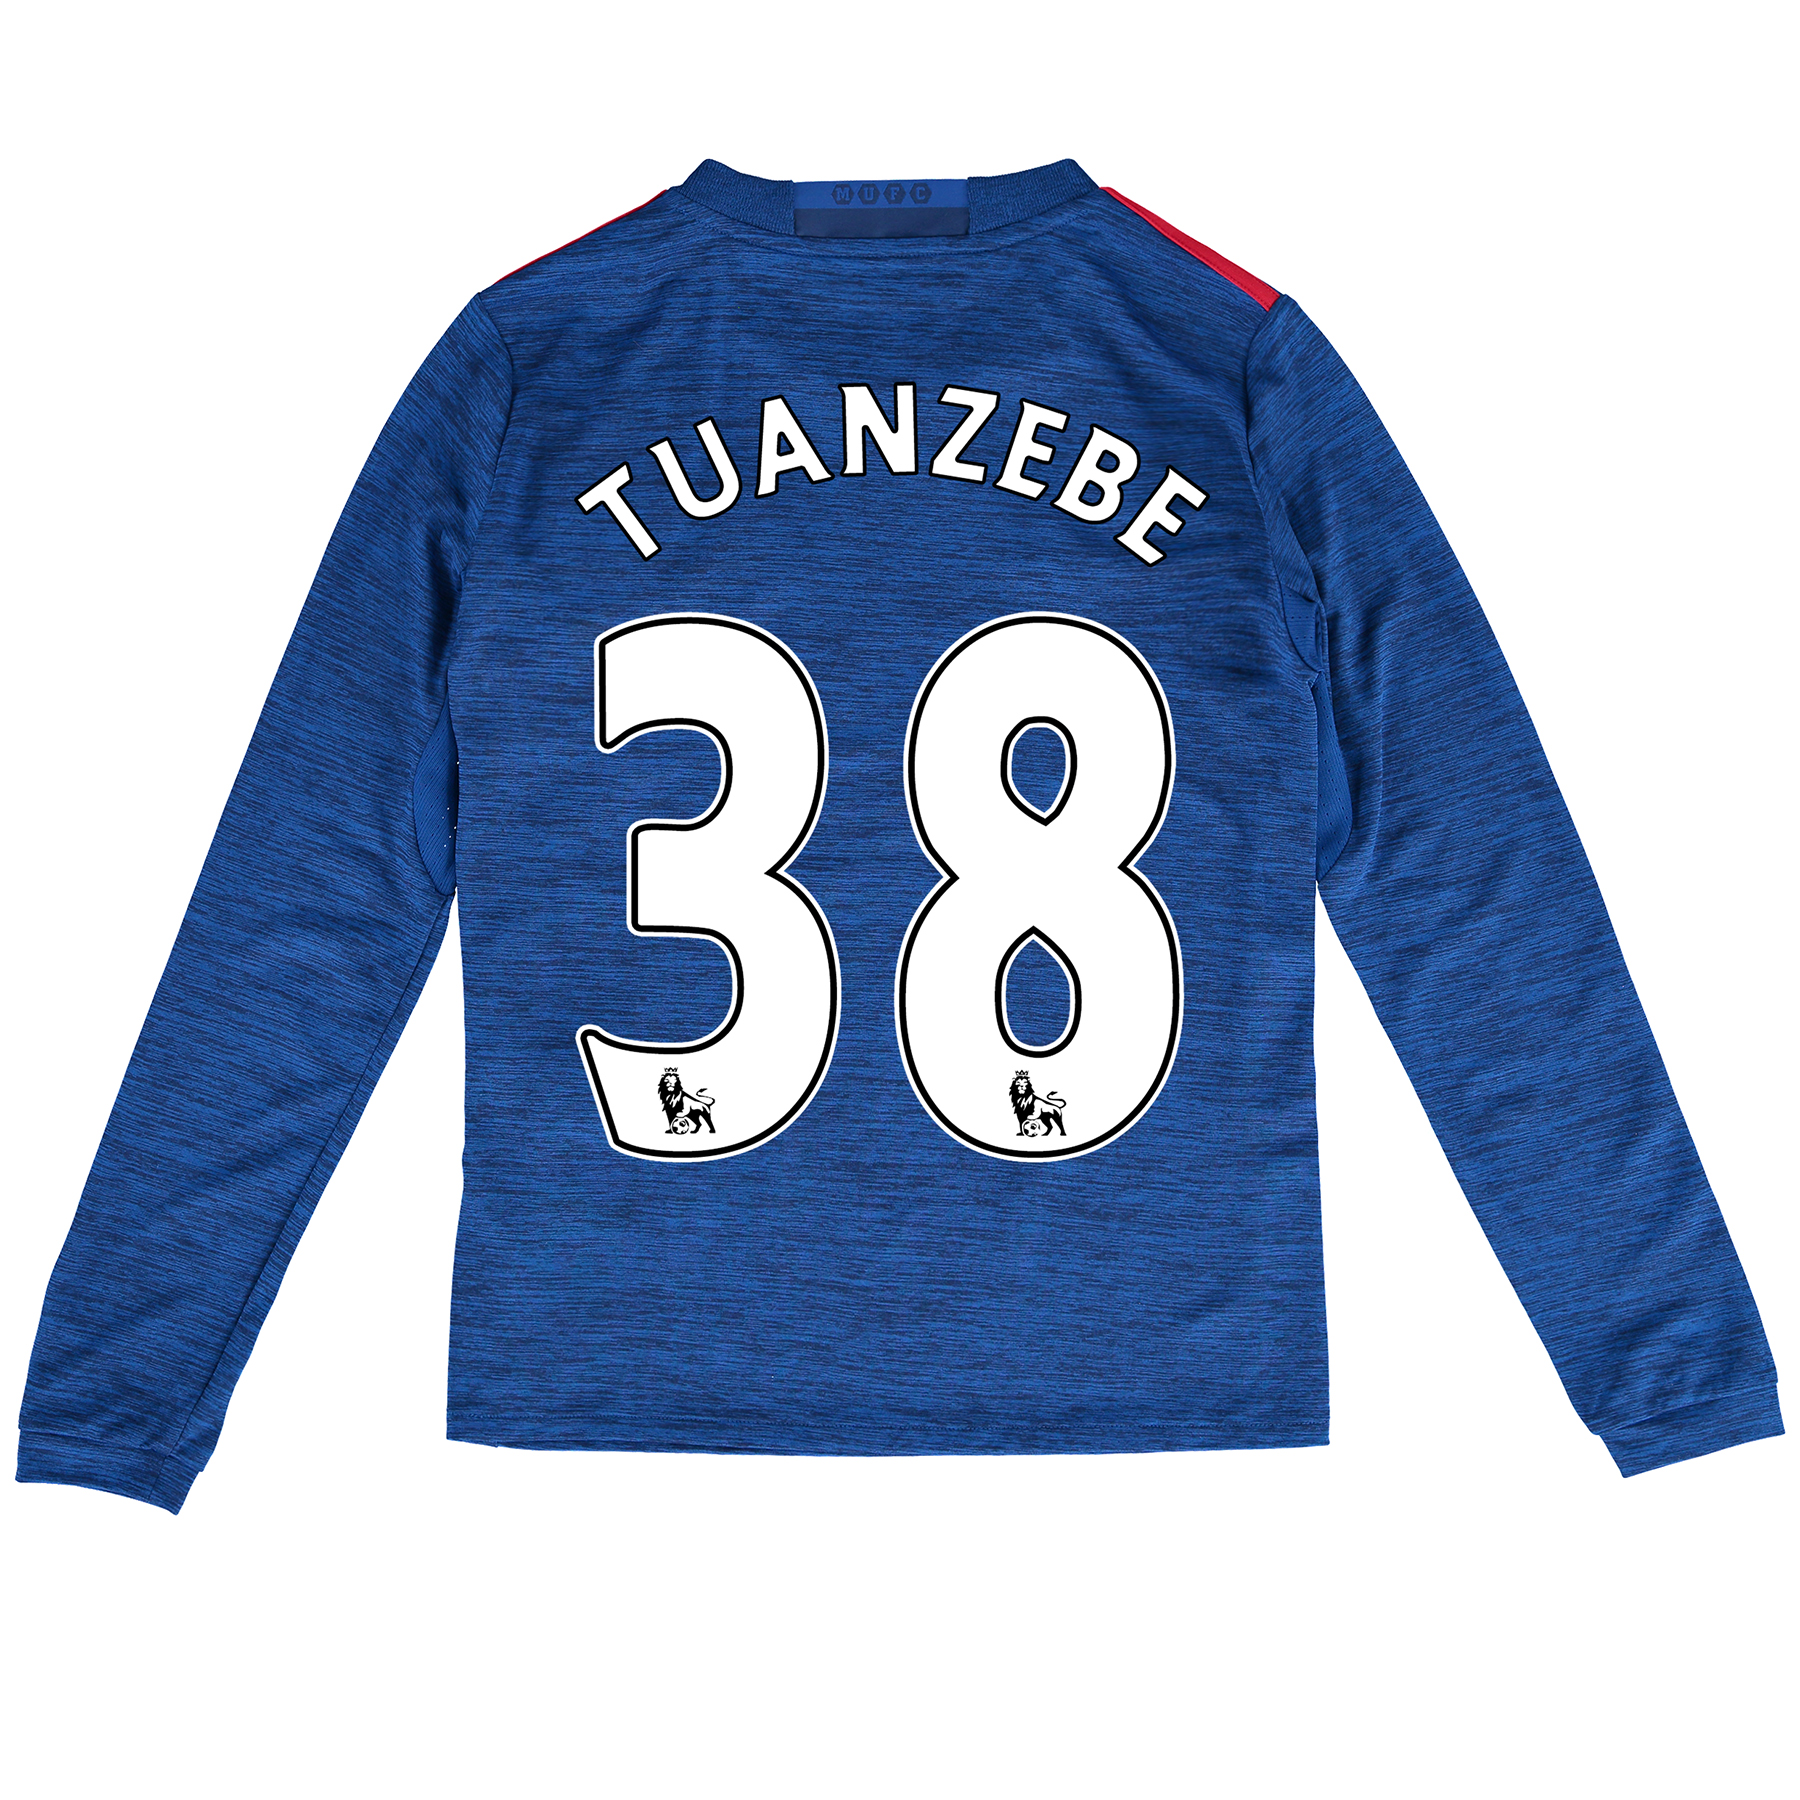 Manchester United Away Shirt 2016-17 - Kids - Long Sleeve with Tuanzeb, Blue